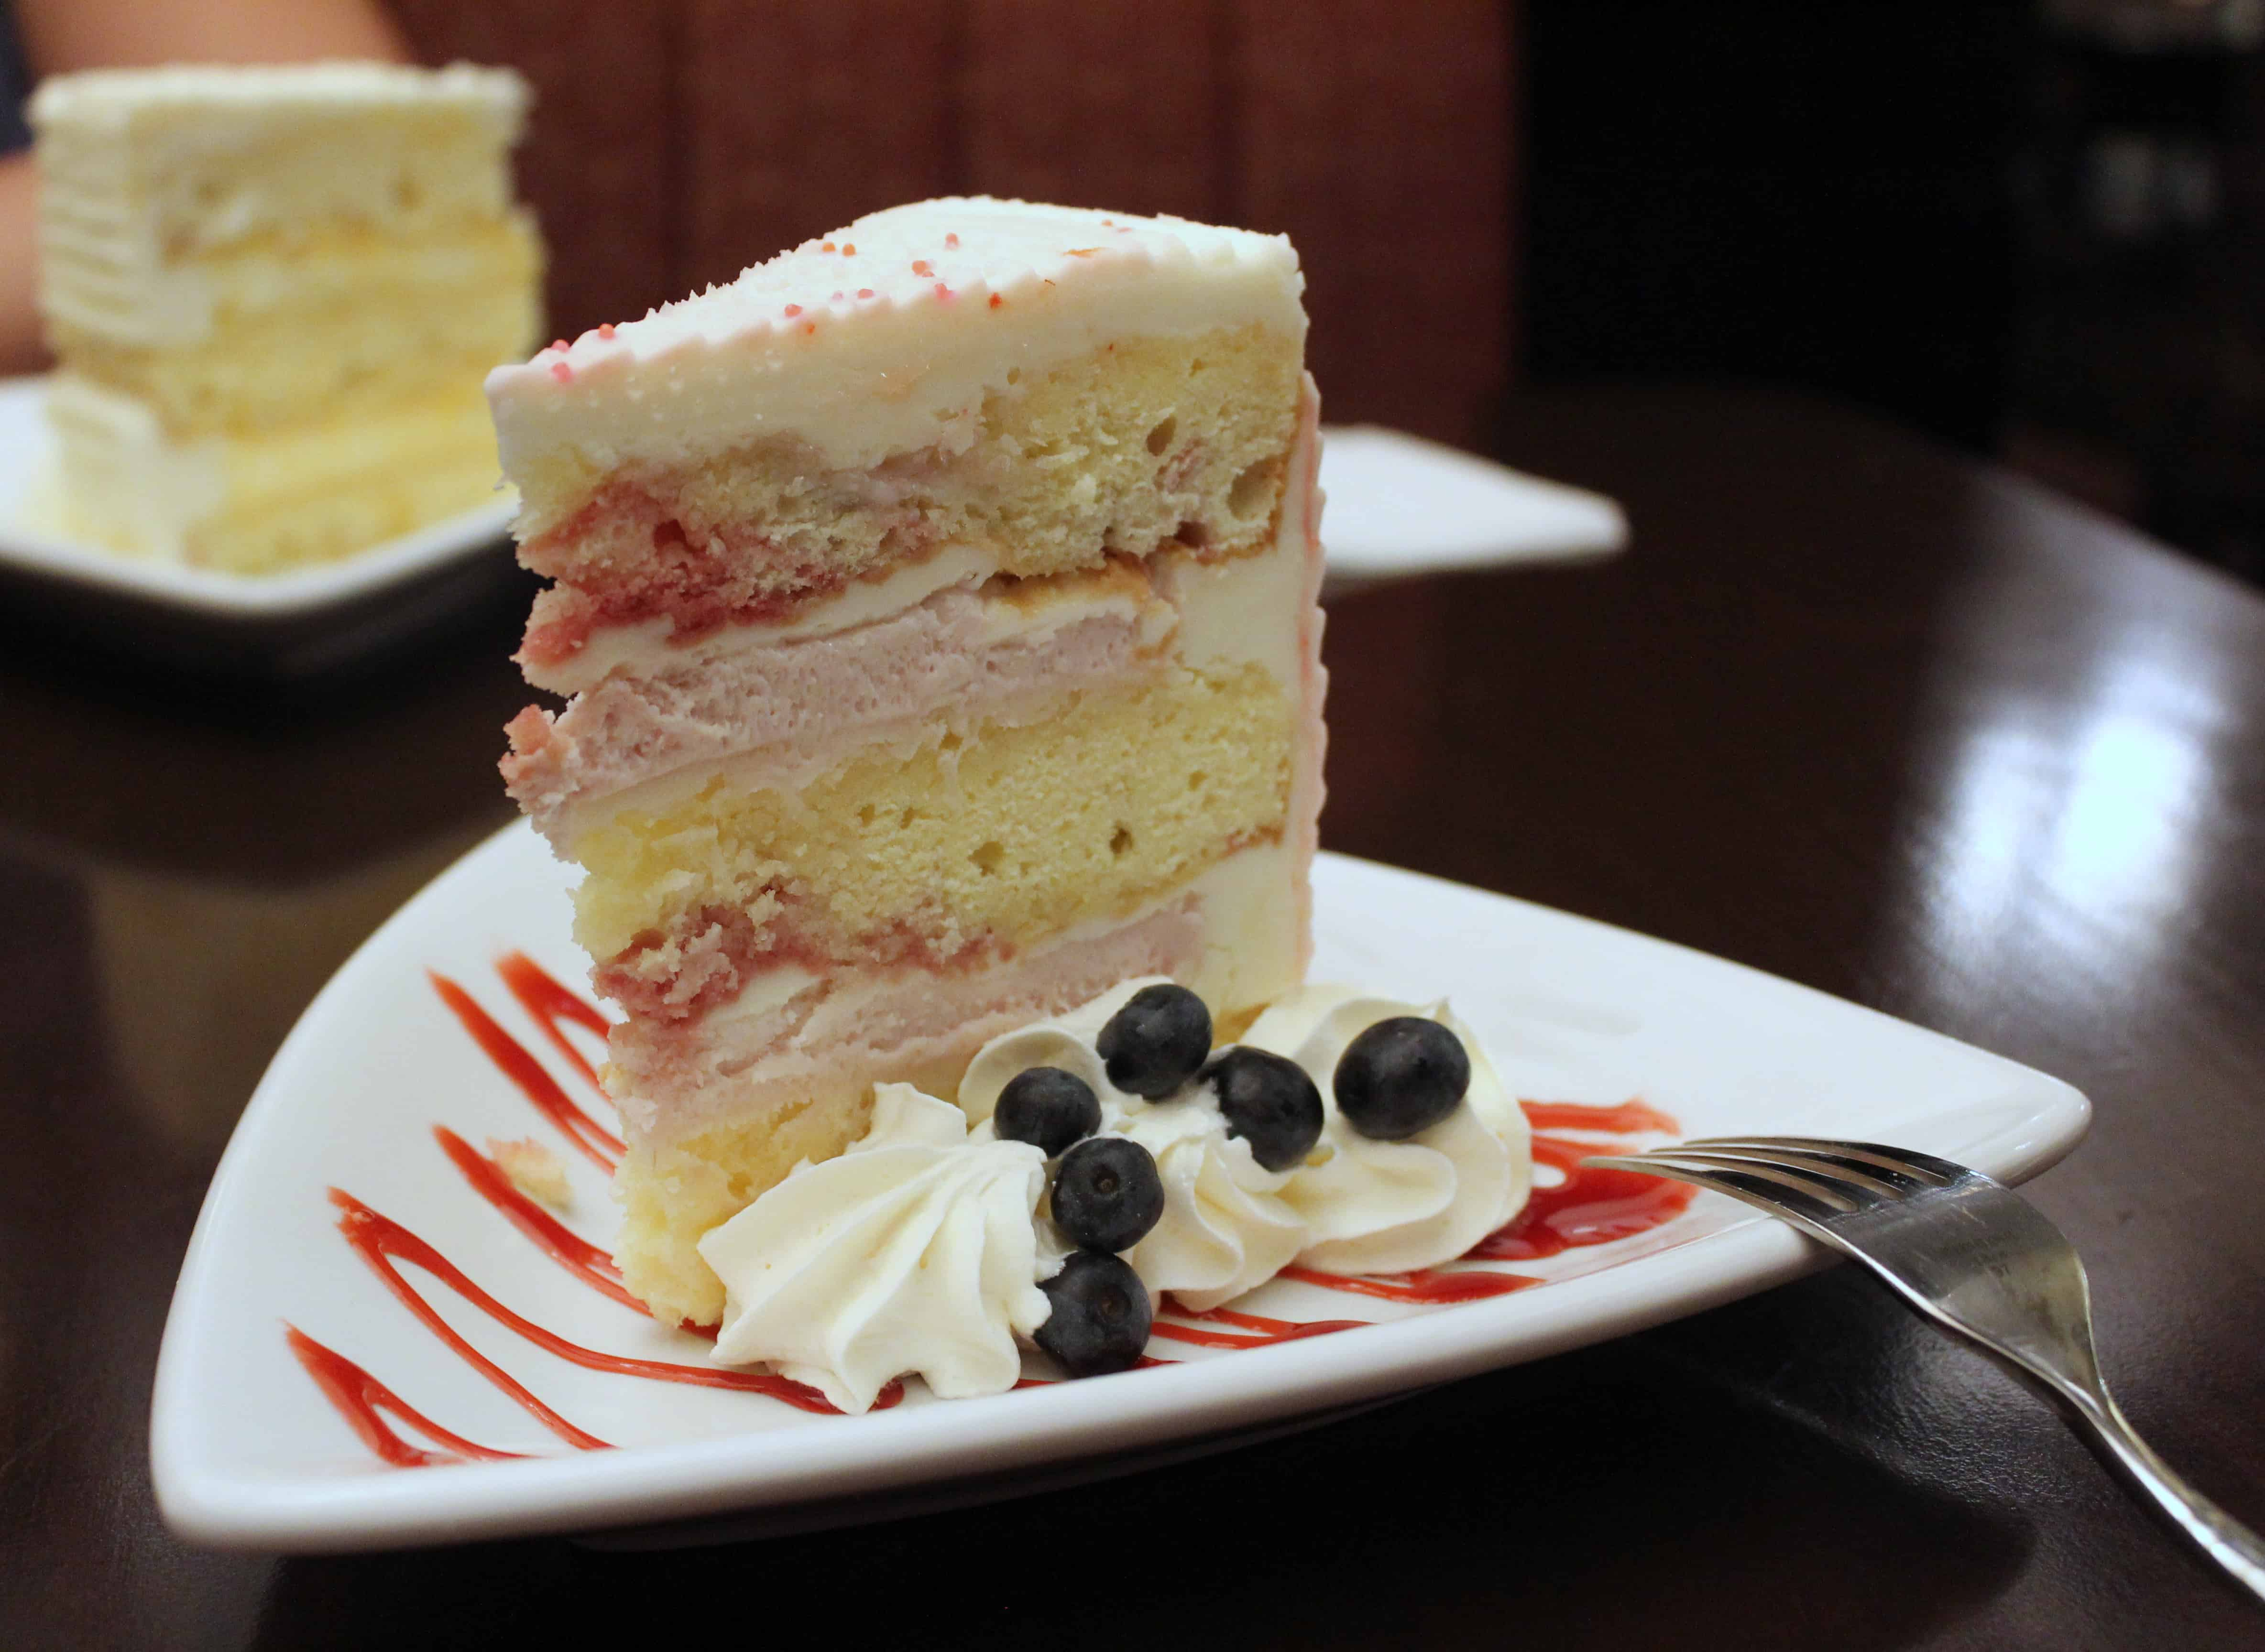 Layered Berry Dessert at Niagara Falls Red Coach Inn